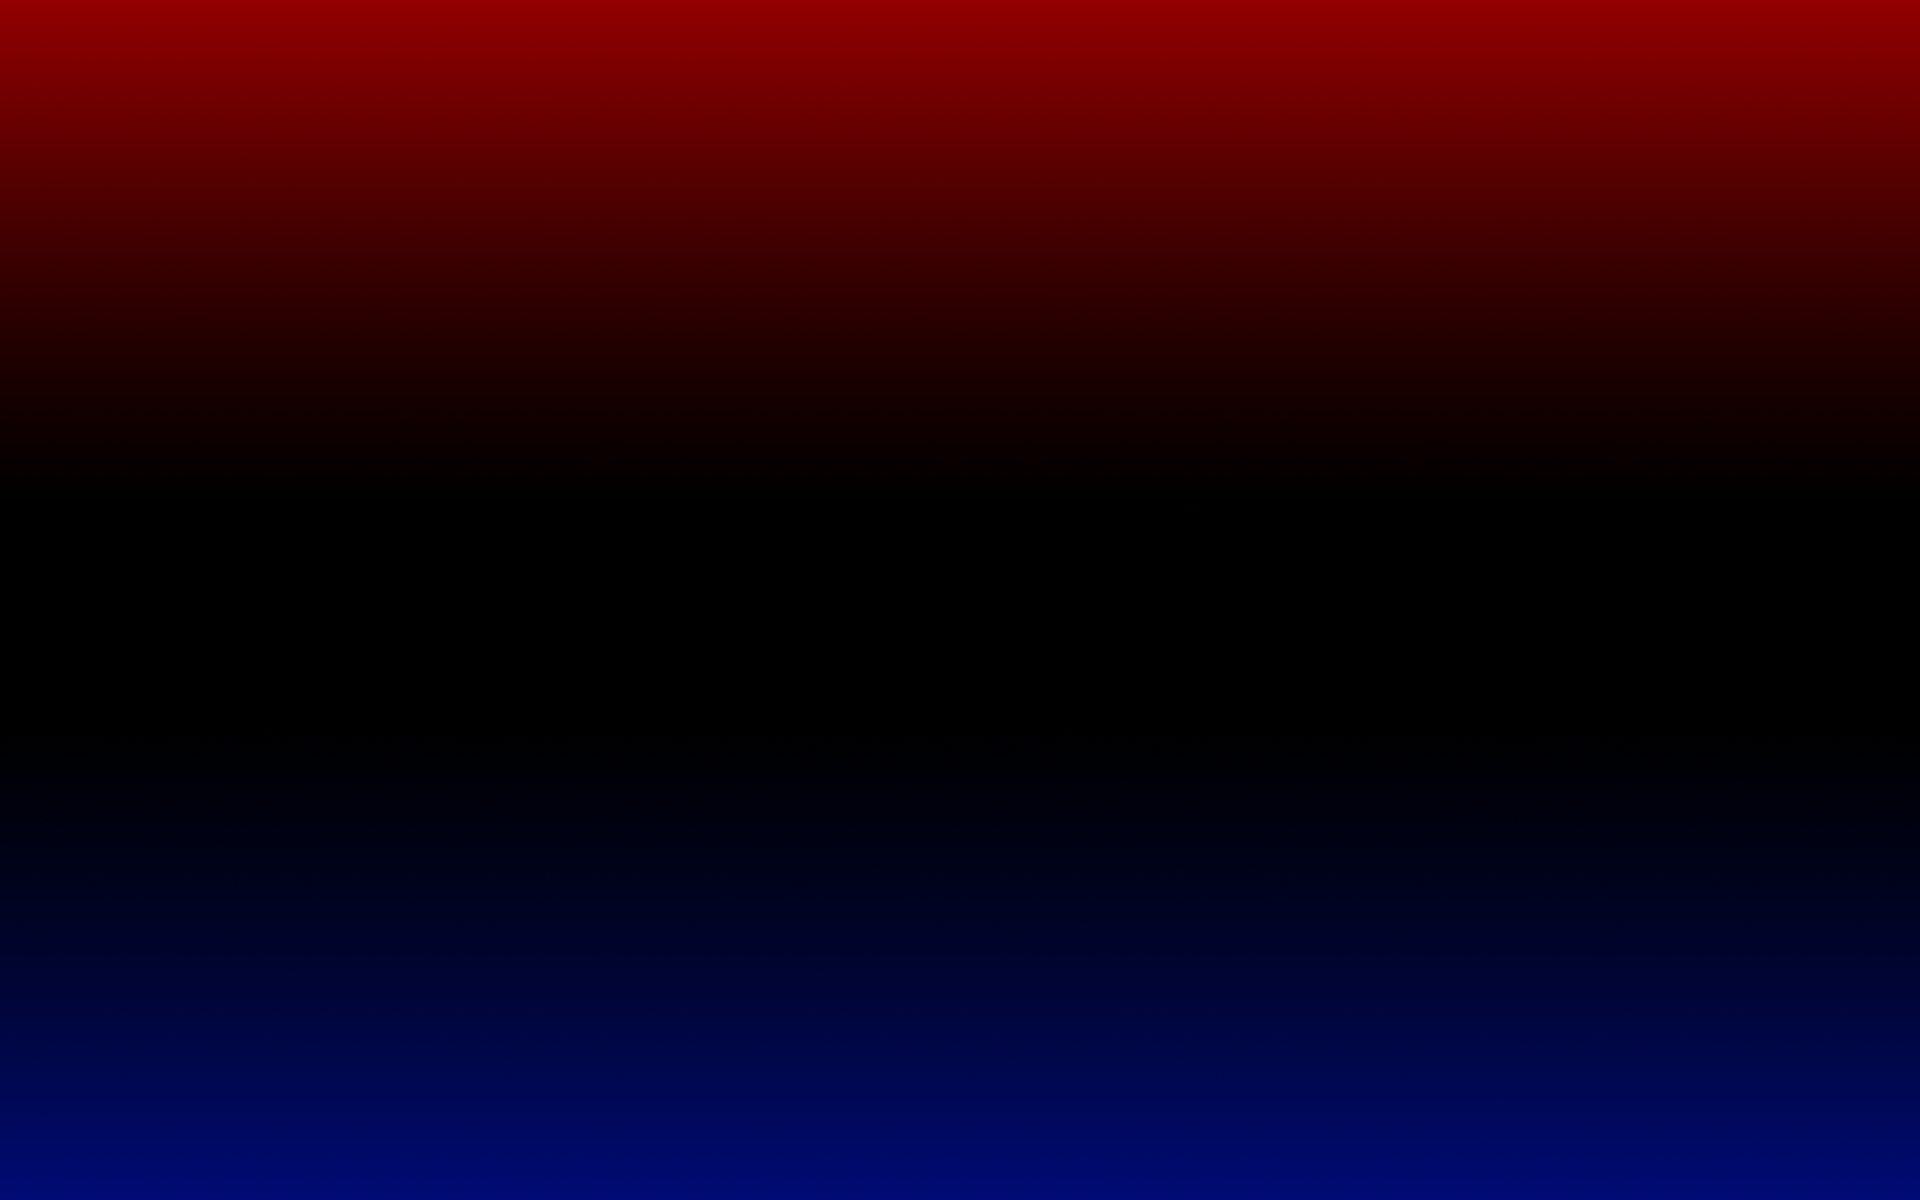 Red And Blue Wallpaper